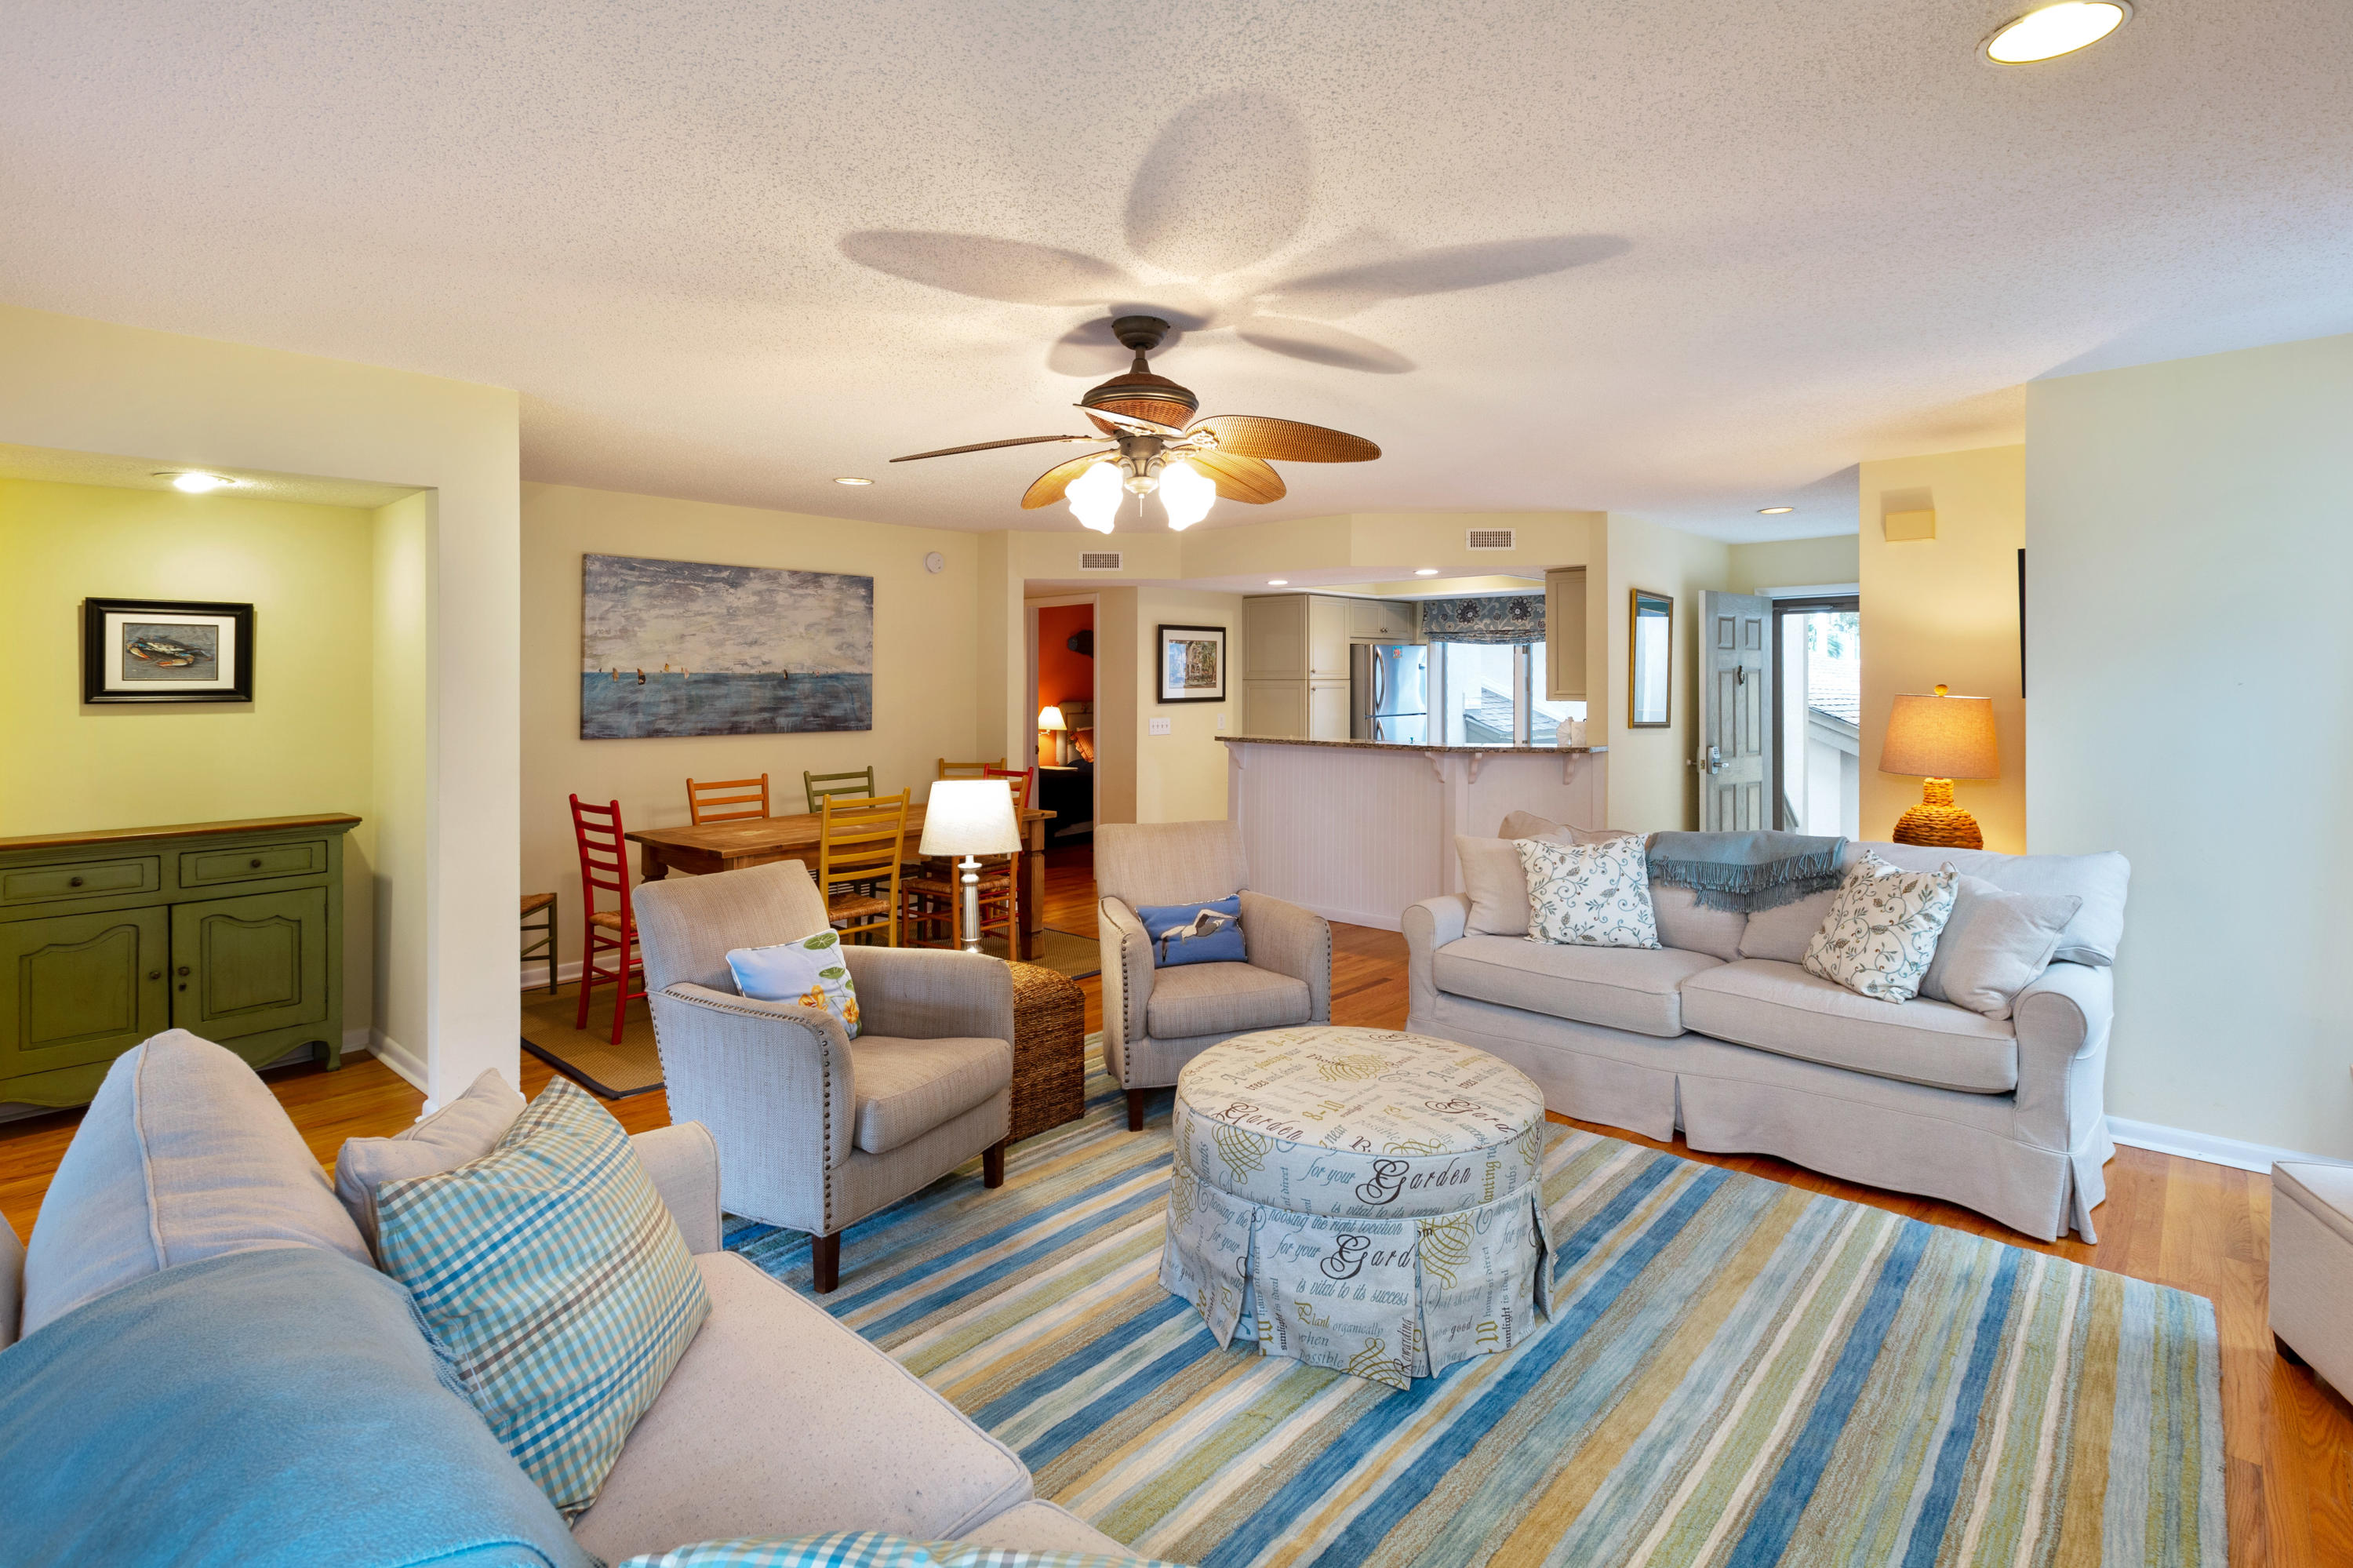 Wild Dunes Homes For Sale - 401 Yacht Harbor, Isle of Palms, SC - 15